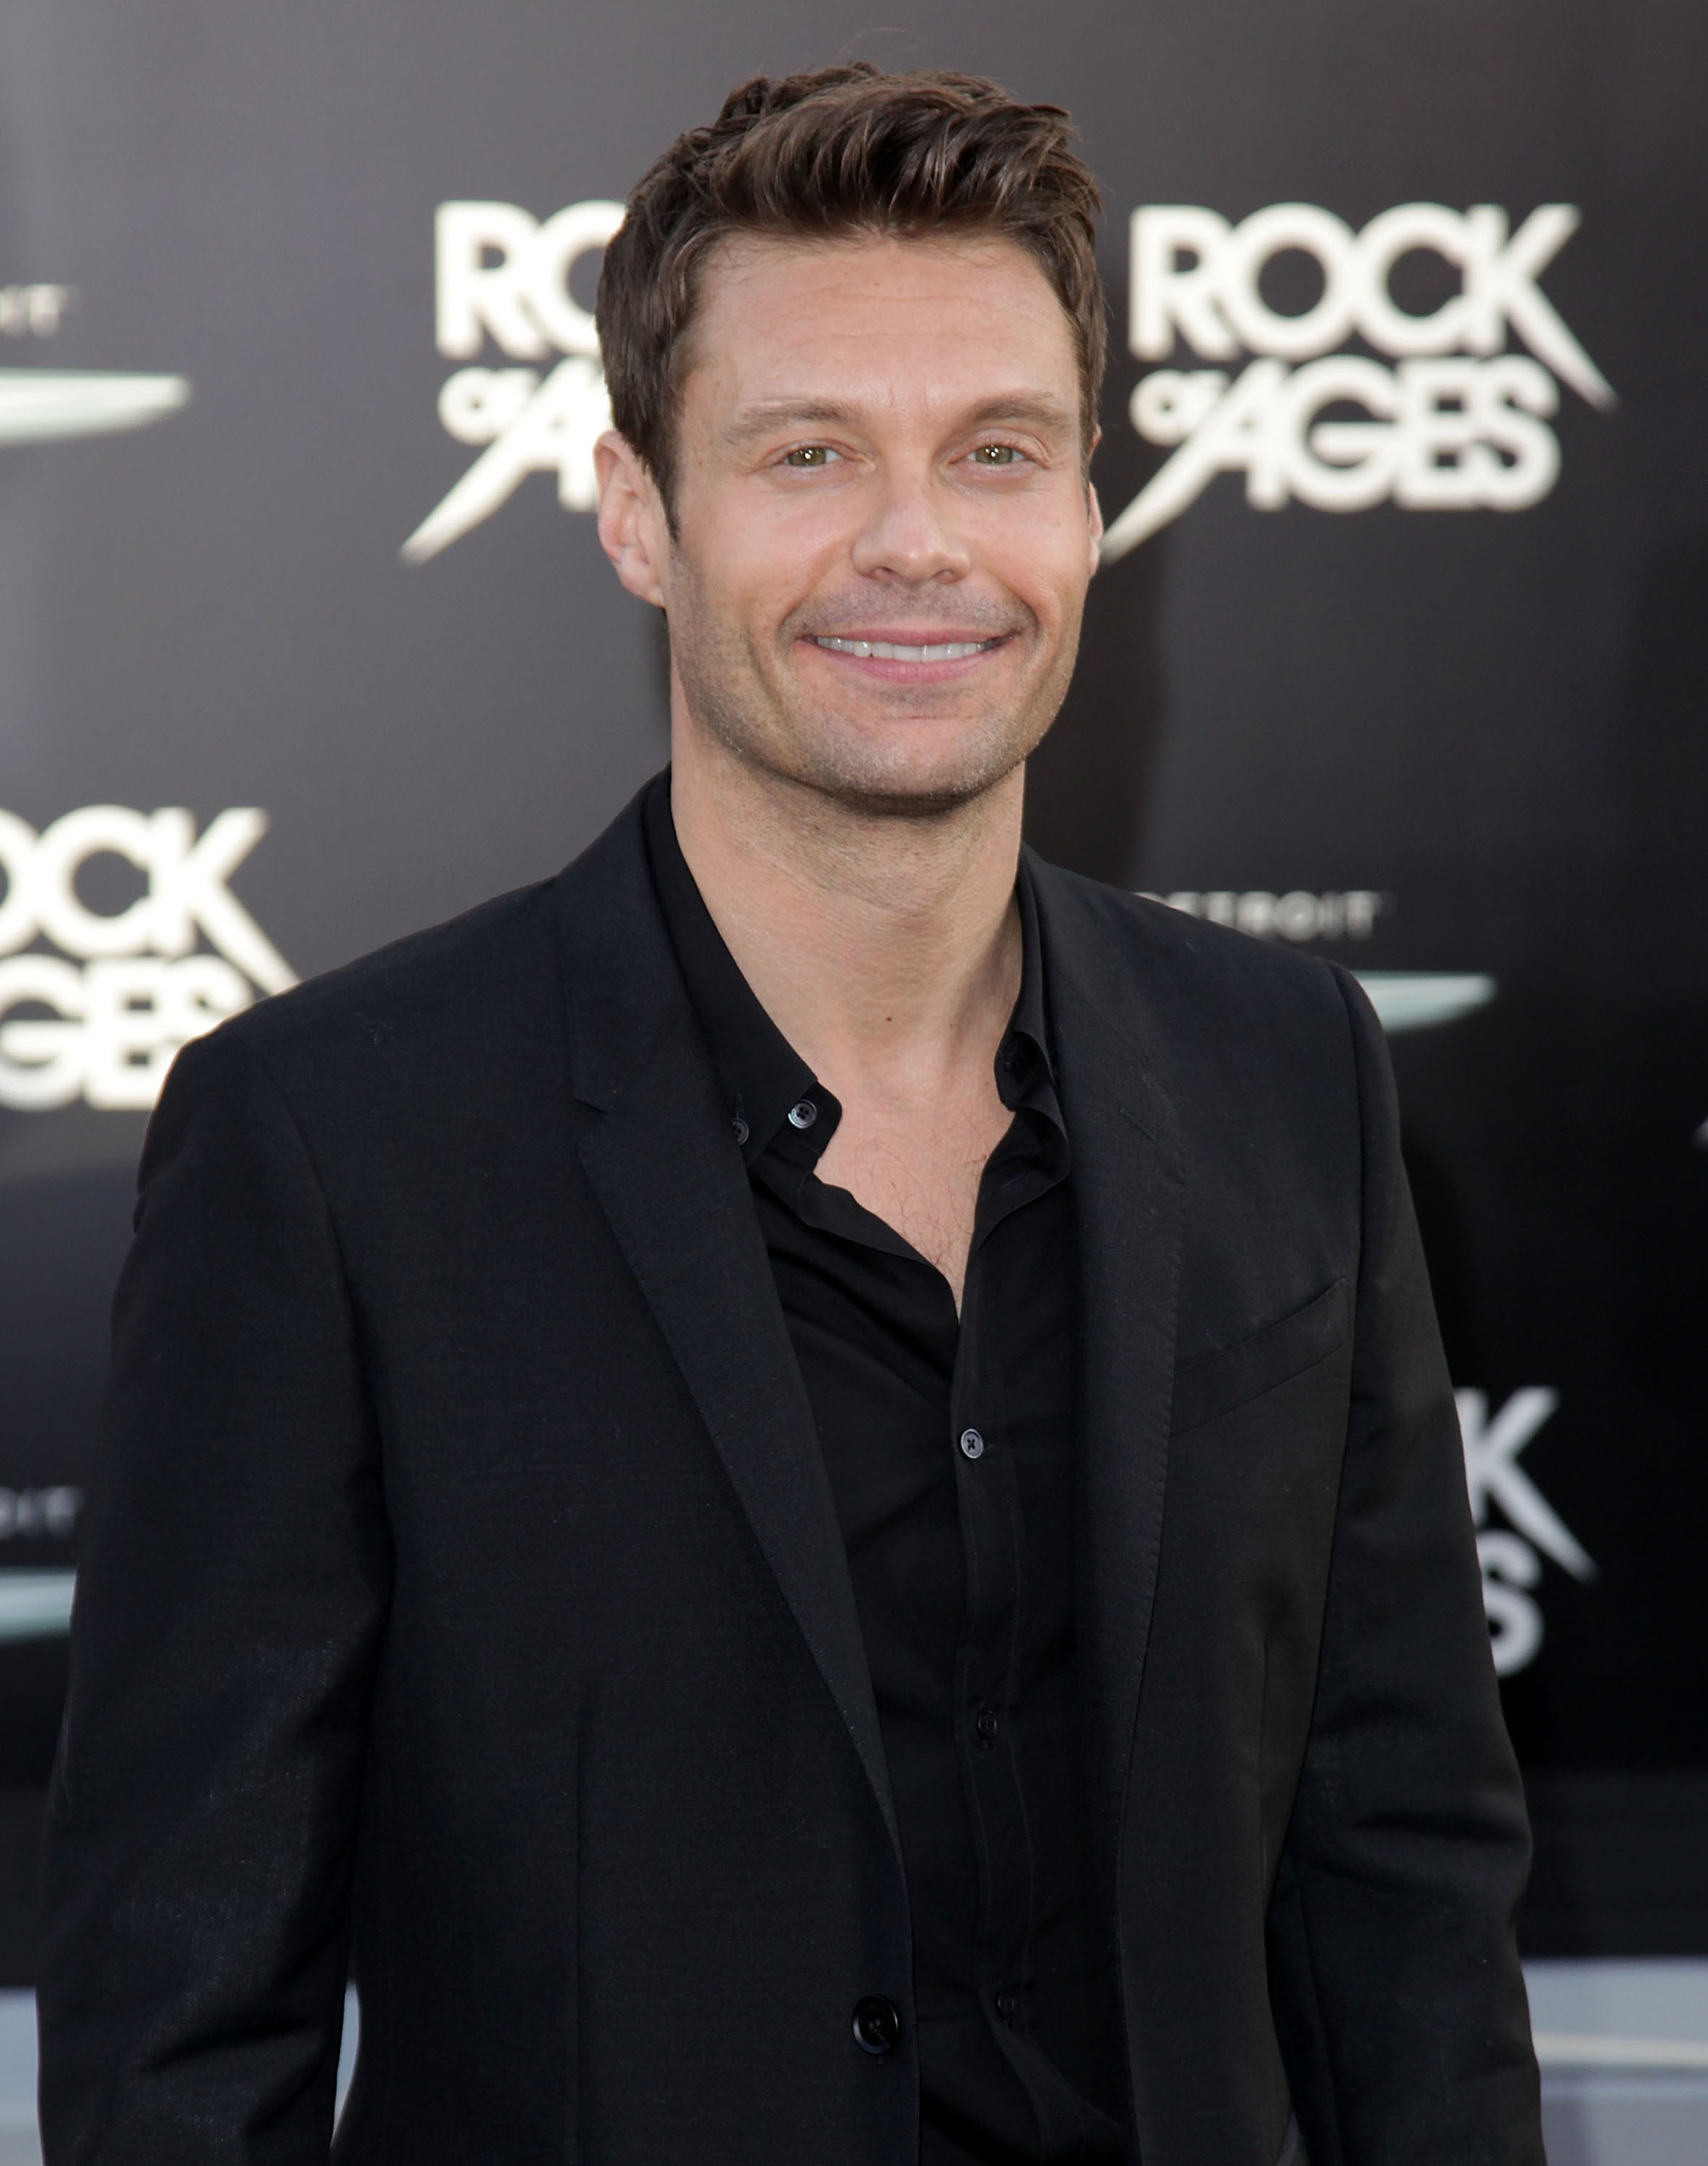 Ryan Seacrest, CBS team up for Draw Something game show